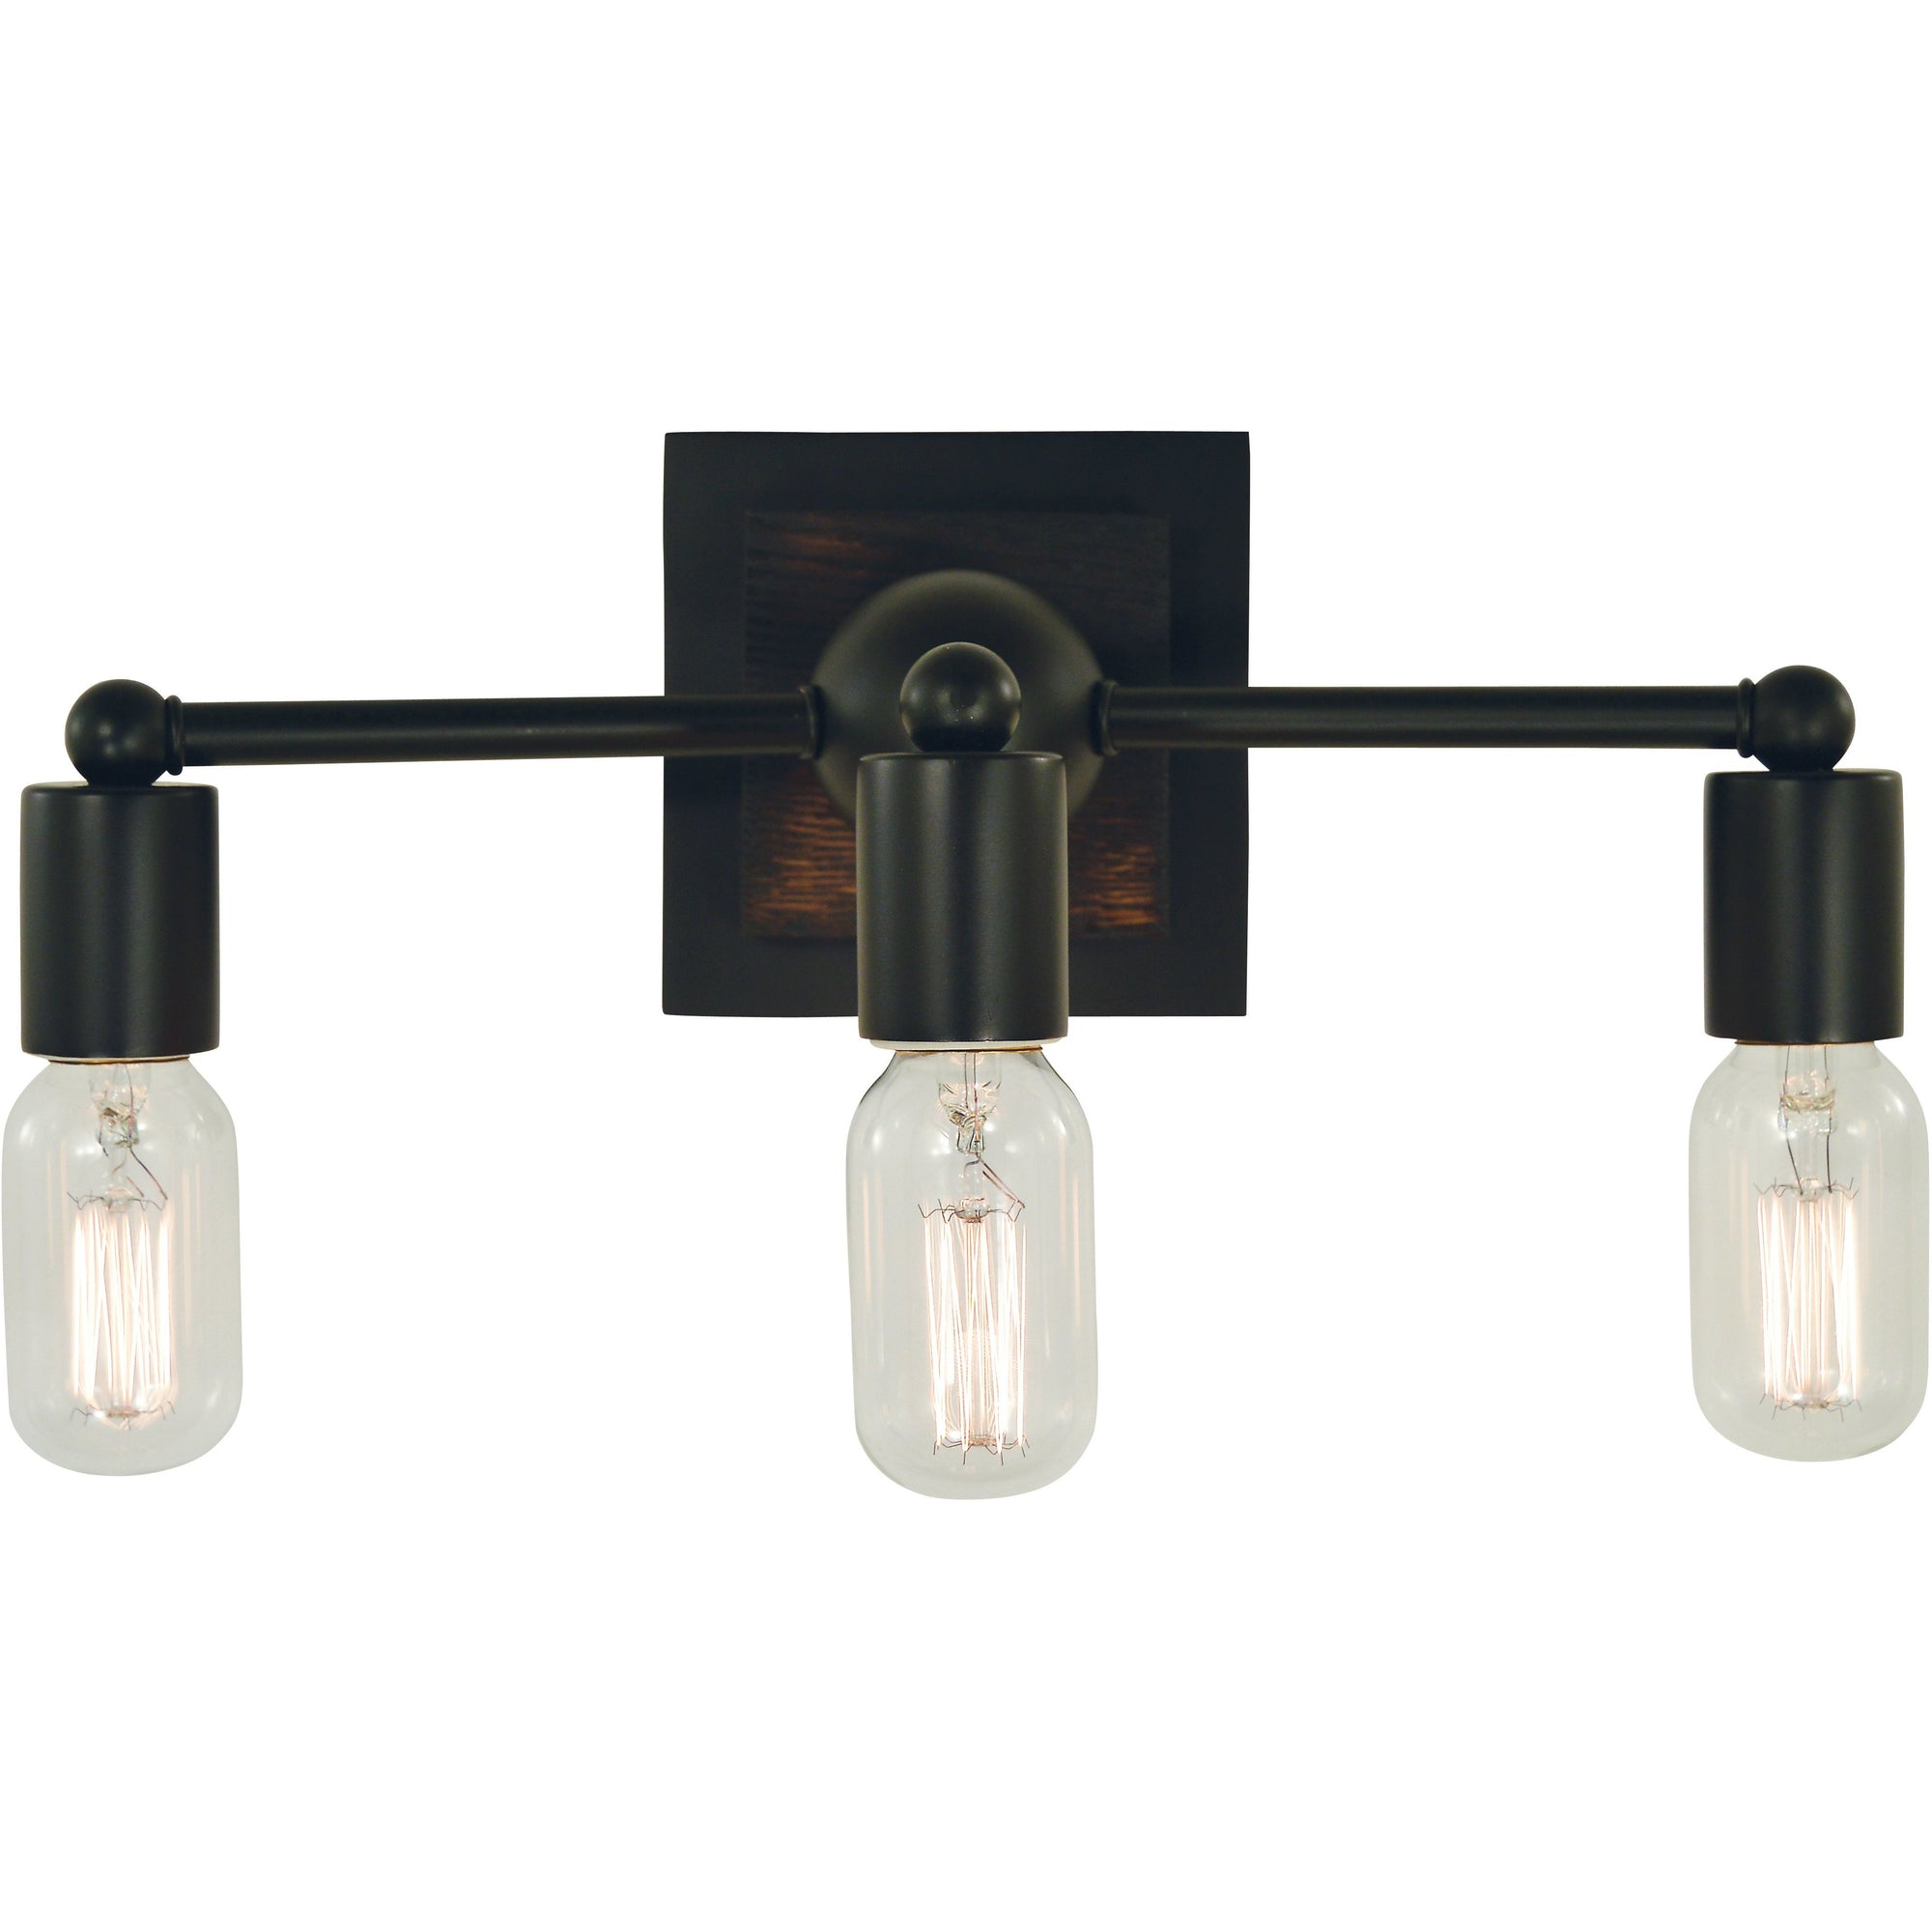 Framburg Wall Sconces Matte Black 3-Light Matte Black Modern Farmhouse Sconce by Framburg 5403